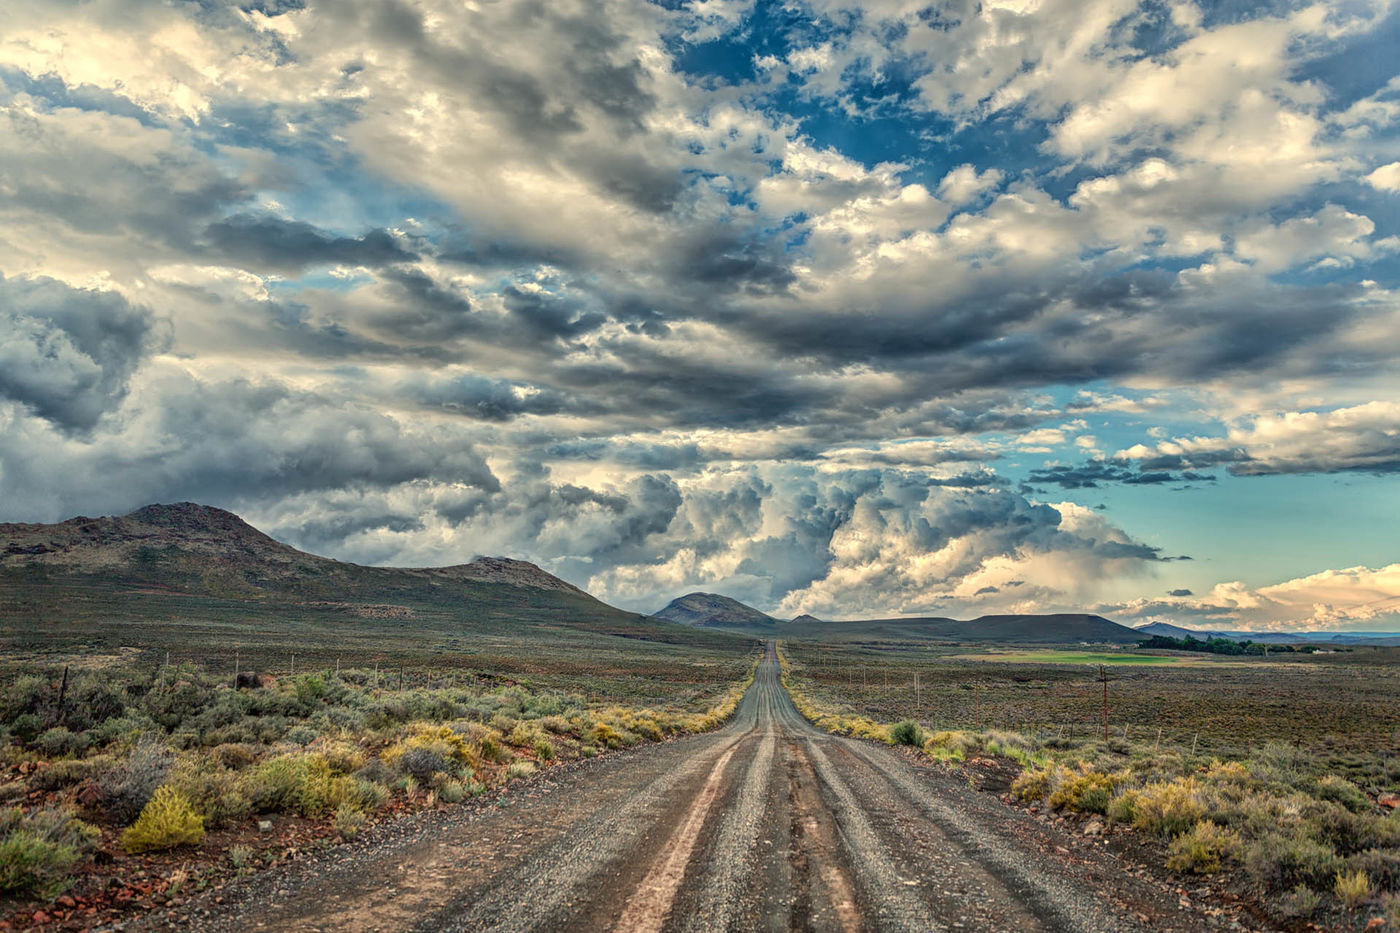 Karoo Highlands Route